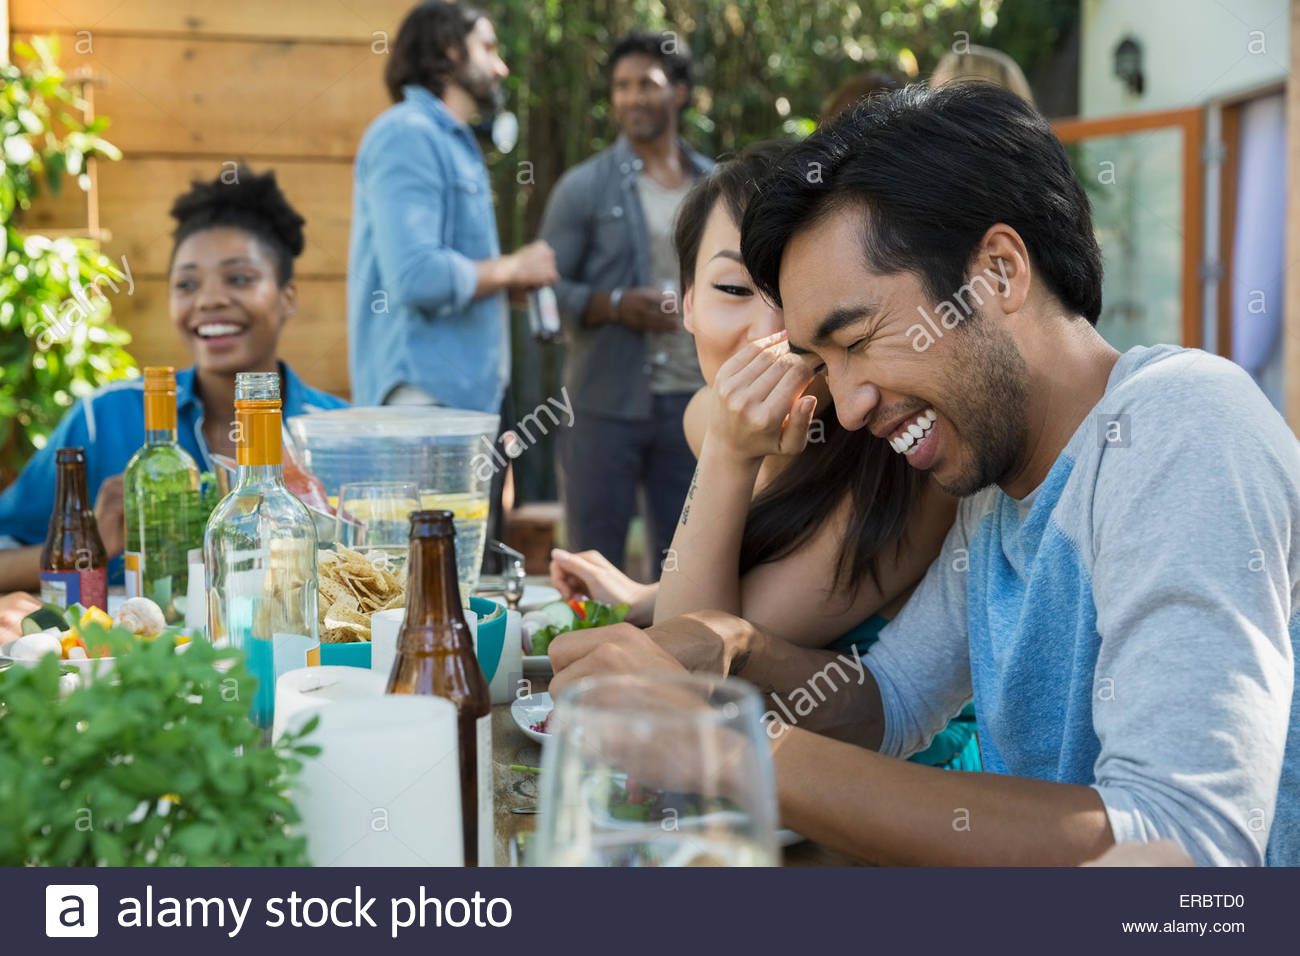 Donna whispering a laughing man al patio tabella Immagini Stock